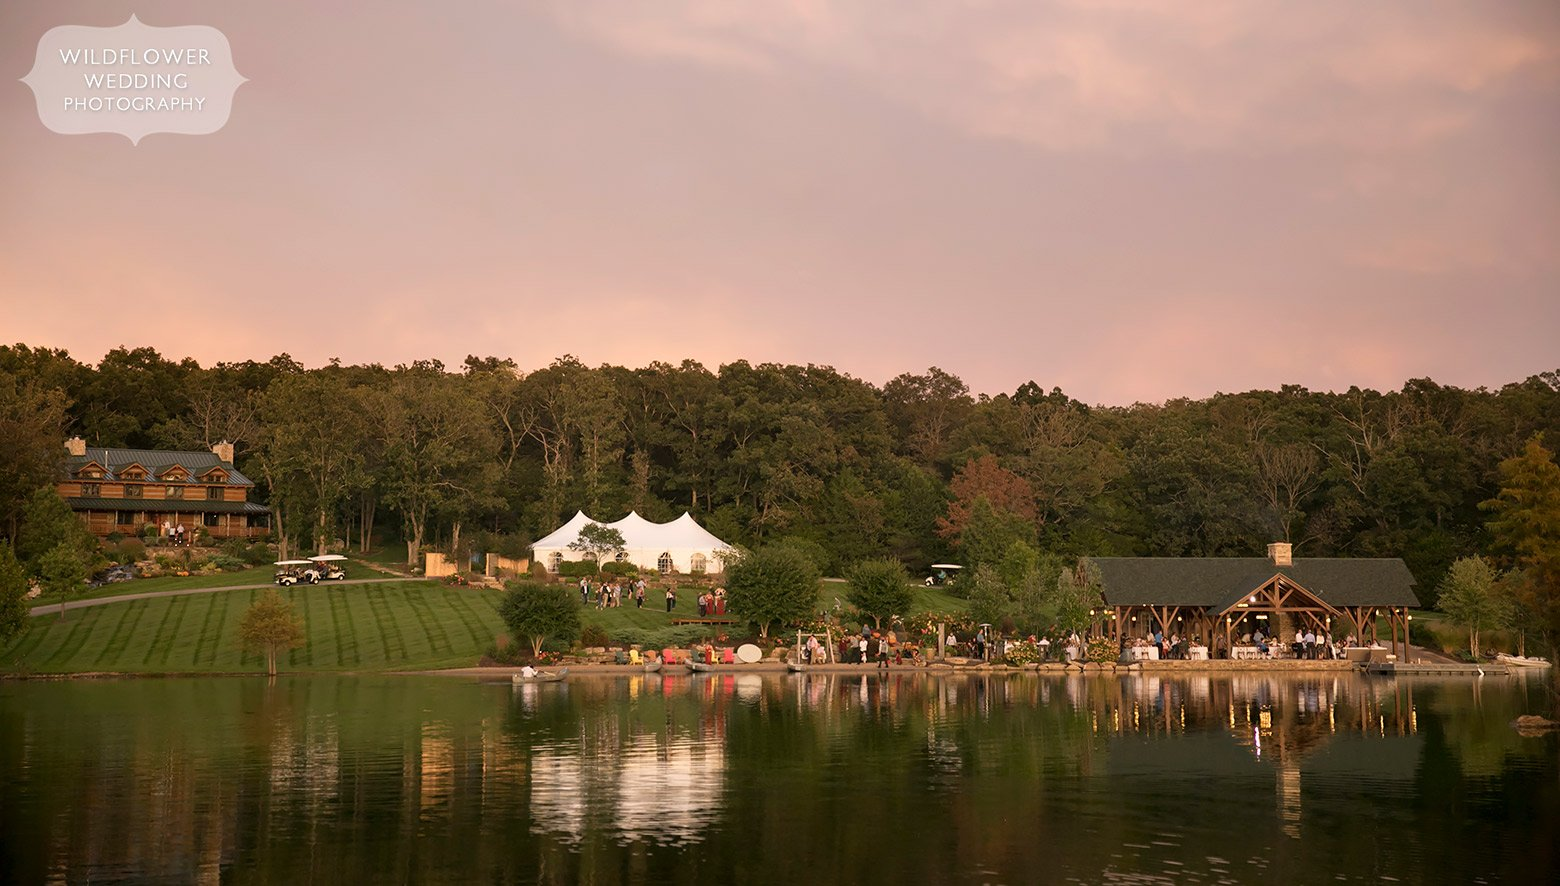 Outdoor lodge wedding in Hermann, MO with tented reception.